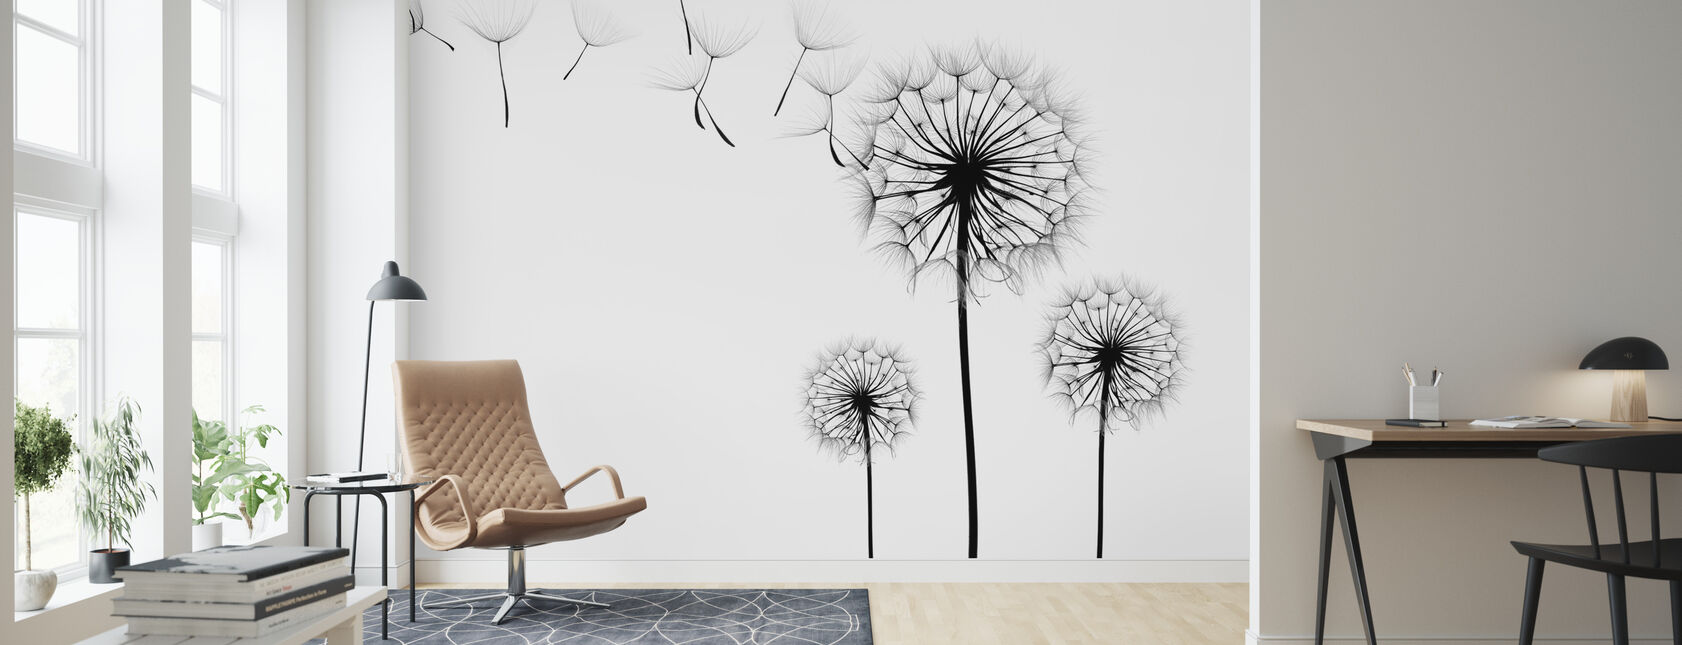 Silhouette of Dandelions Seeds, black and white - Wallpaper - Living Room